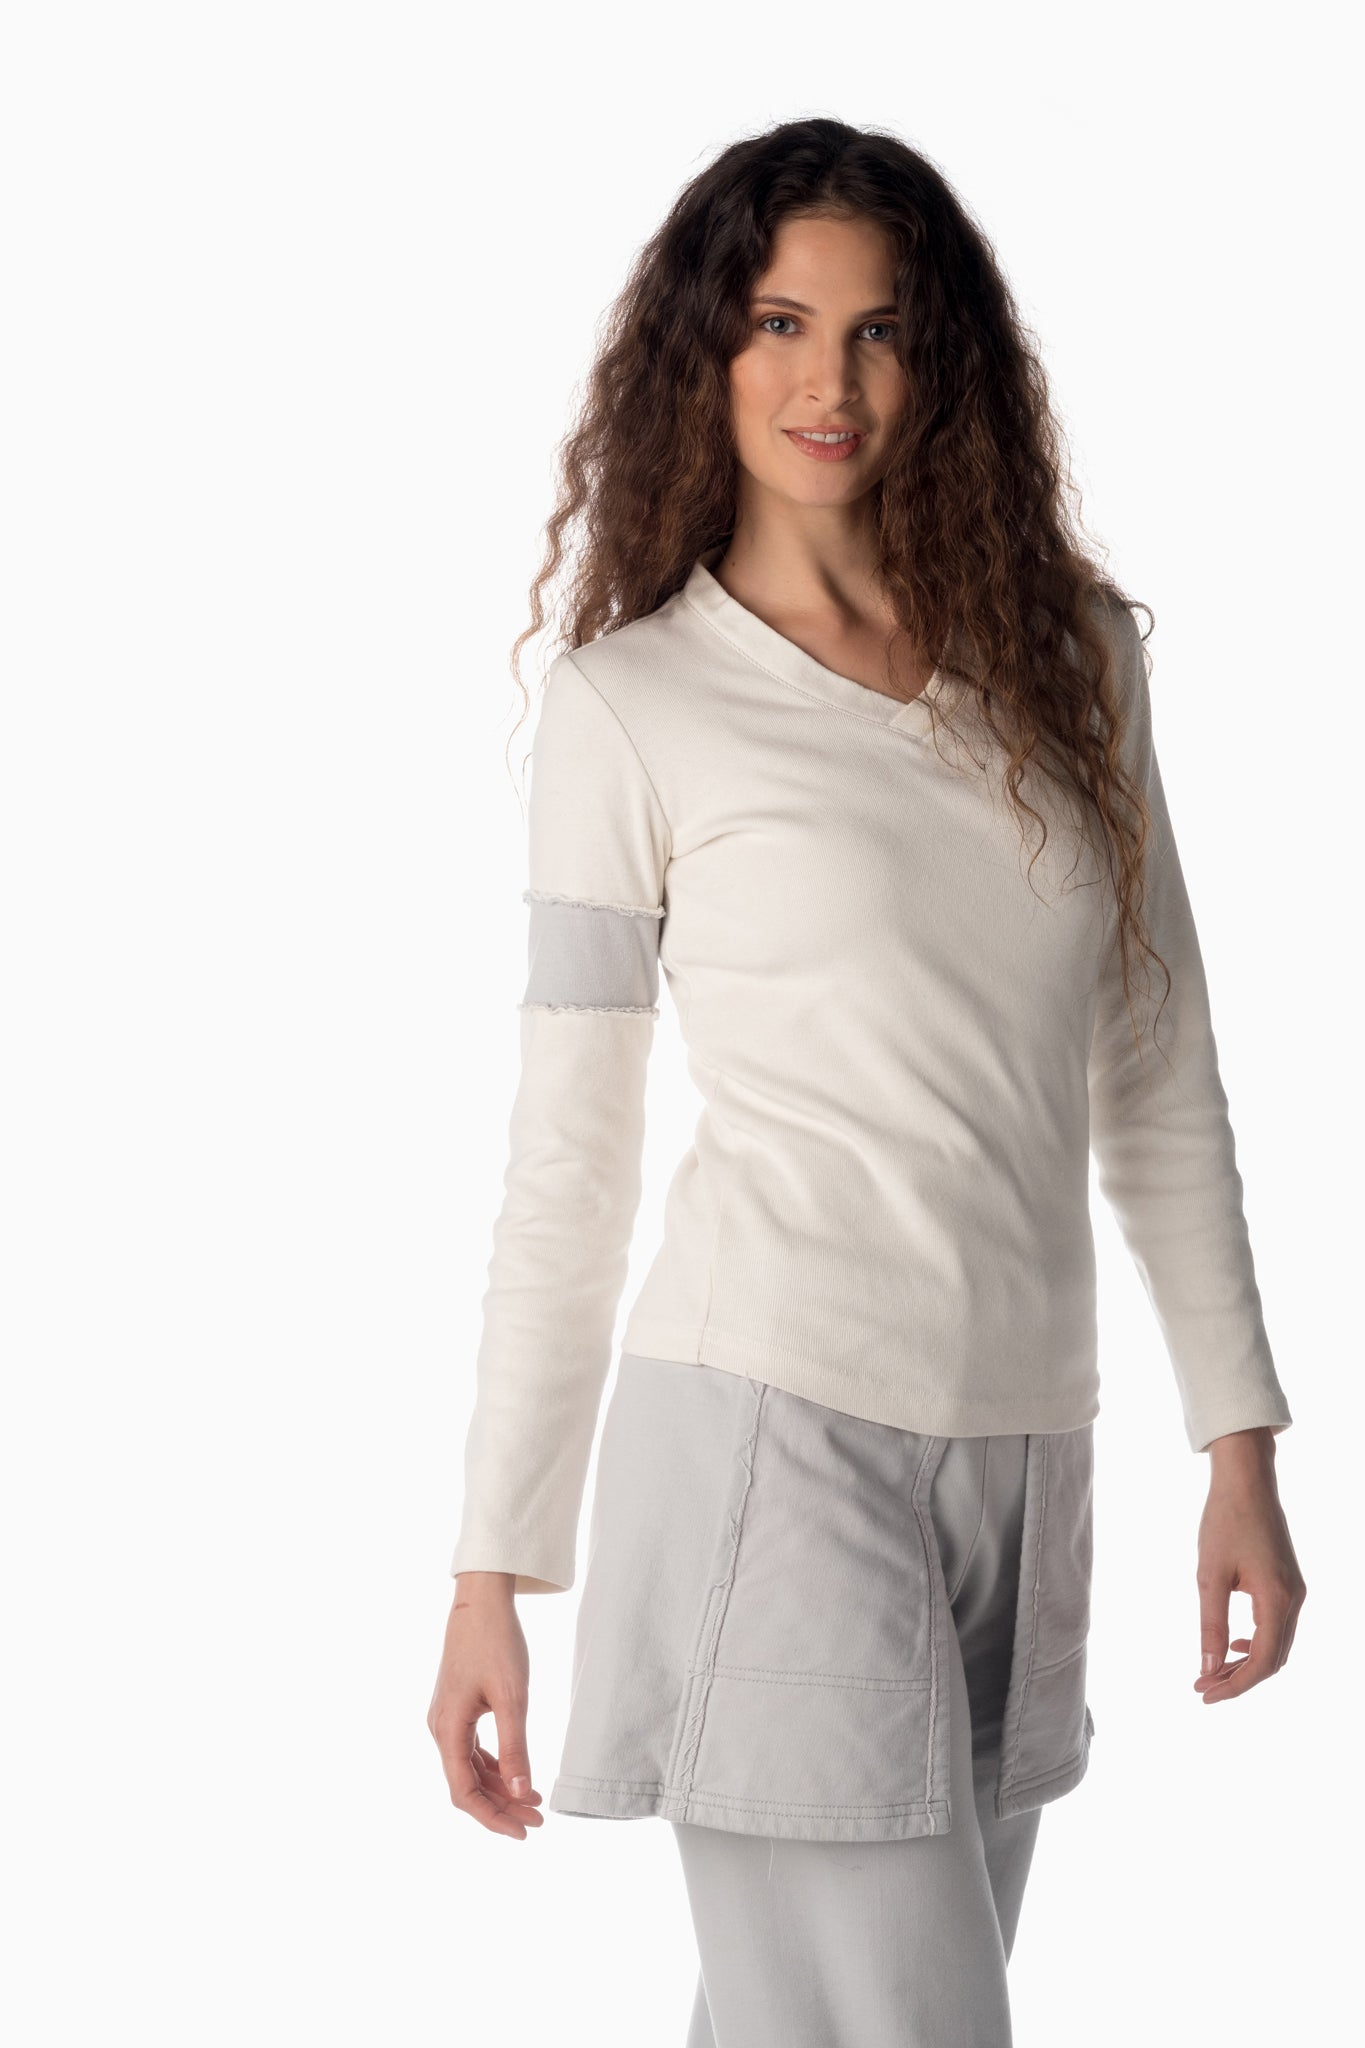 V-Neck & Accent Armband <br>Winter White | Arctic Grey Armband